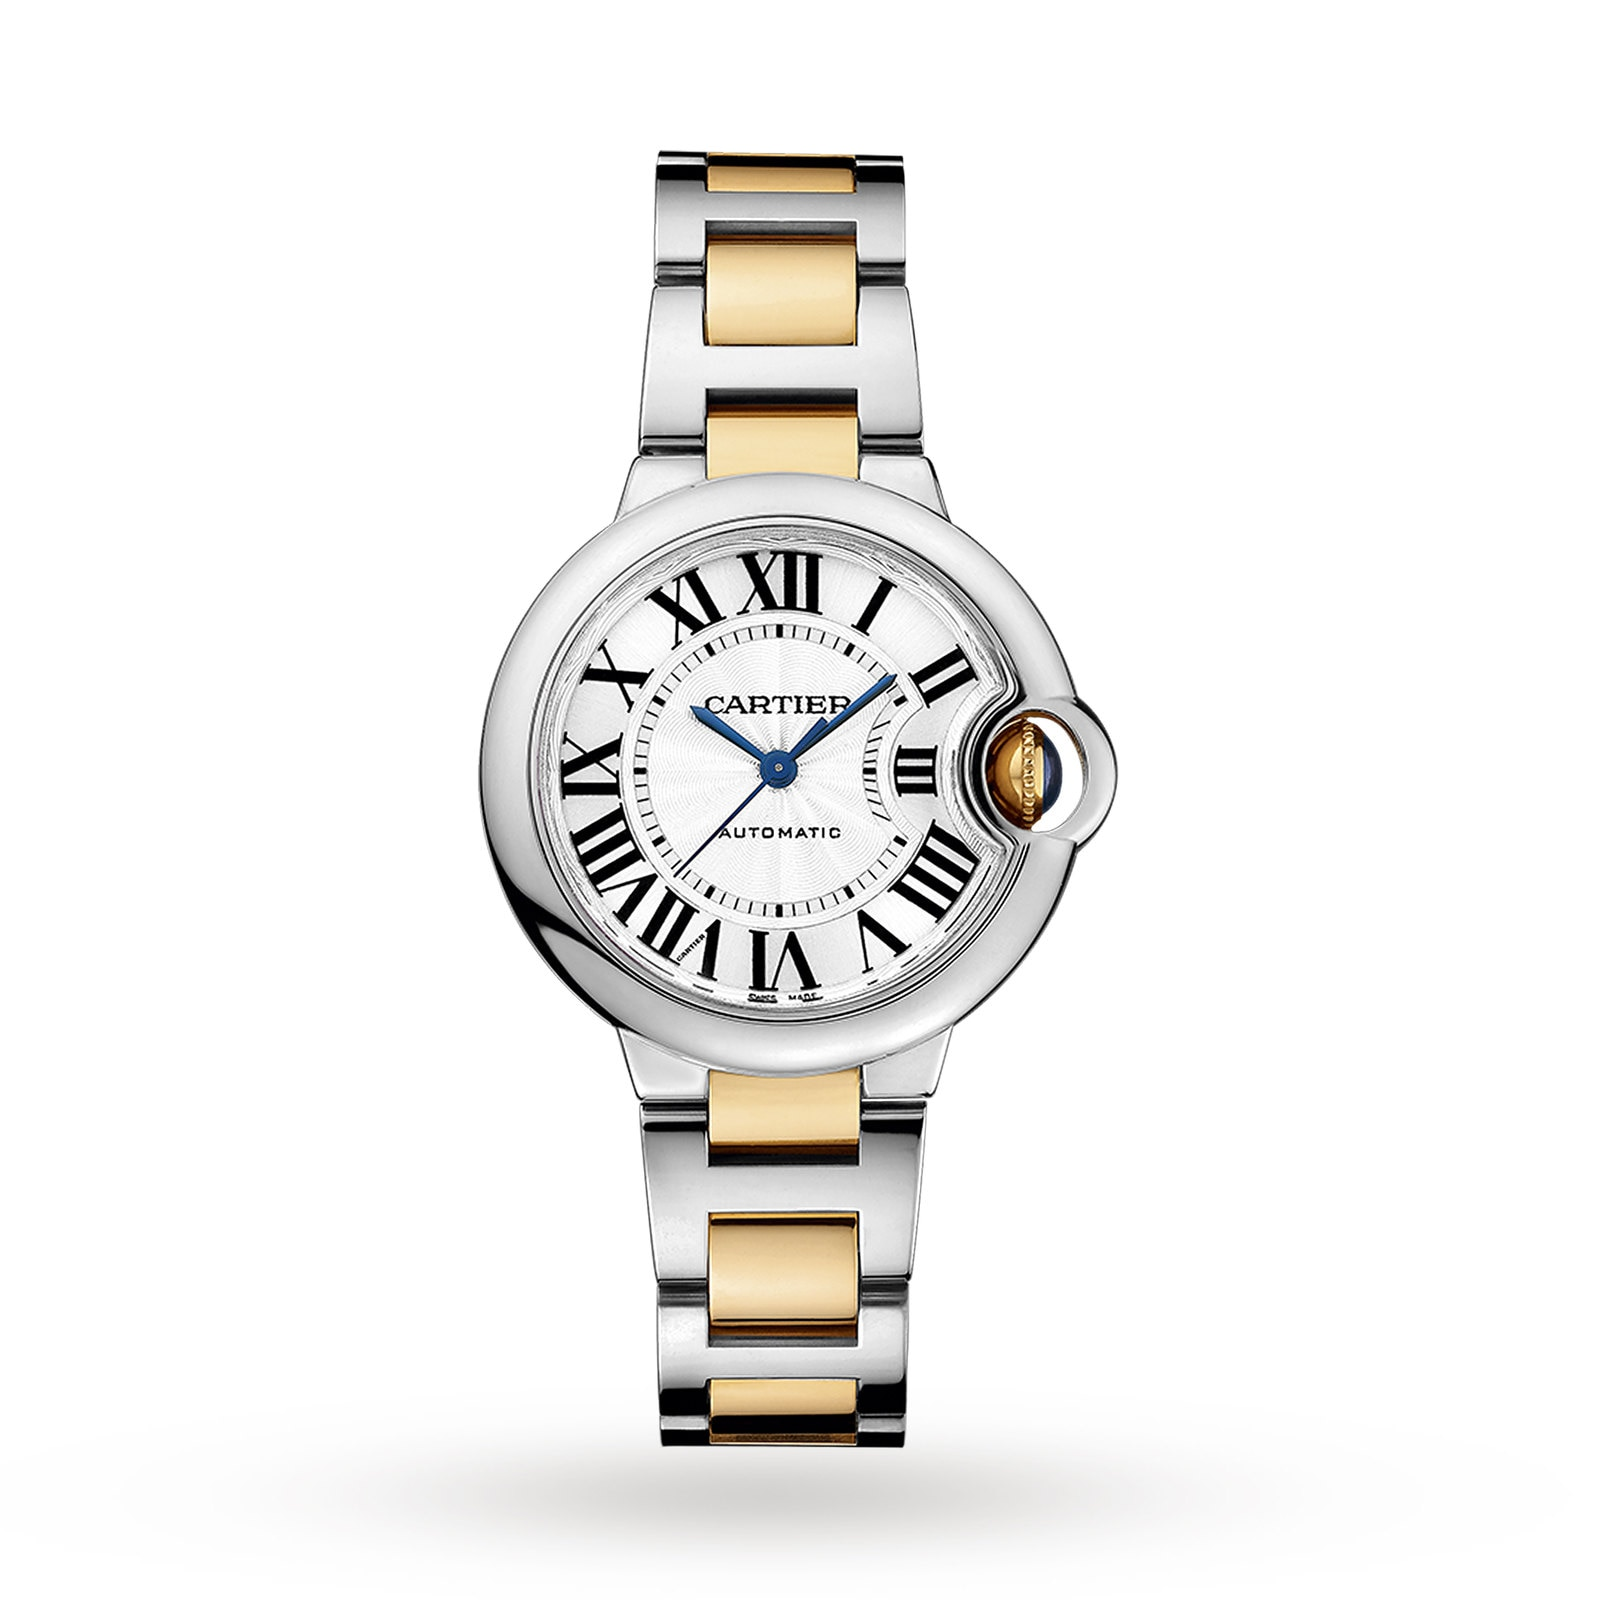 Cartier Ballon Bleu de Cartier watch, 33 mm, 18K yellow gold, steel